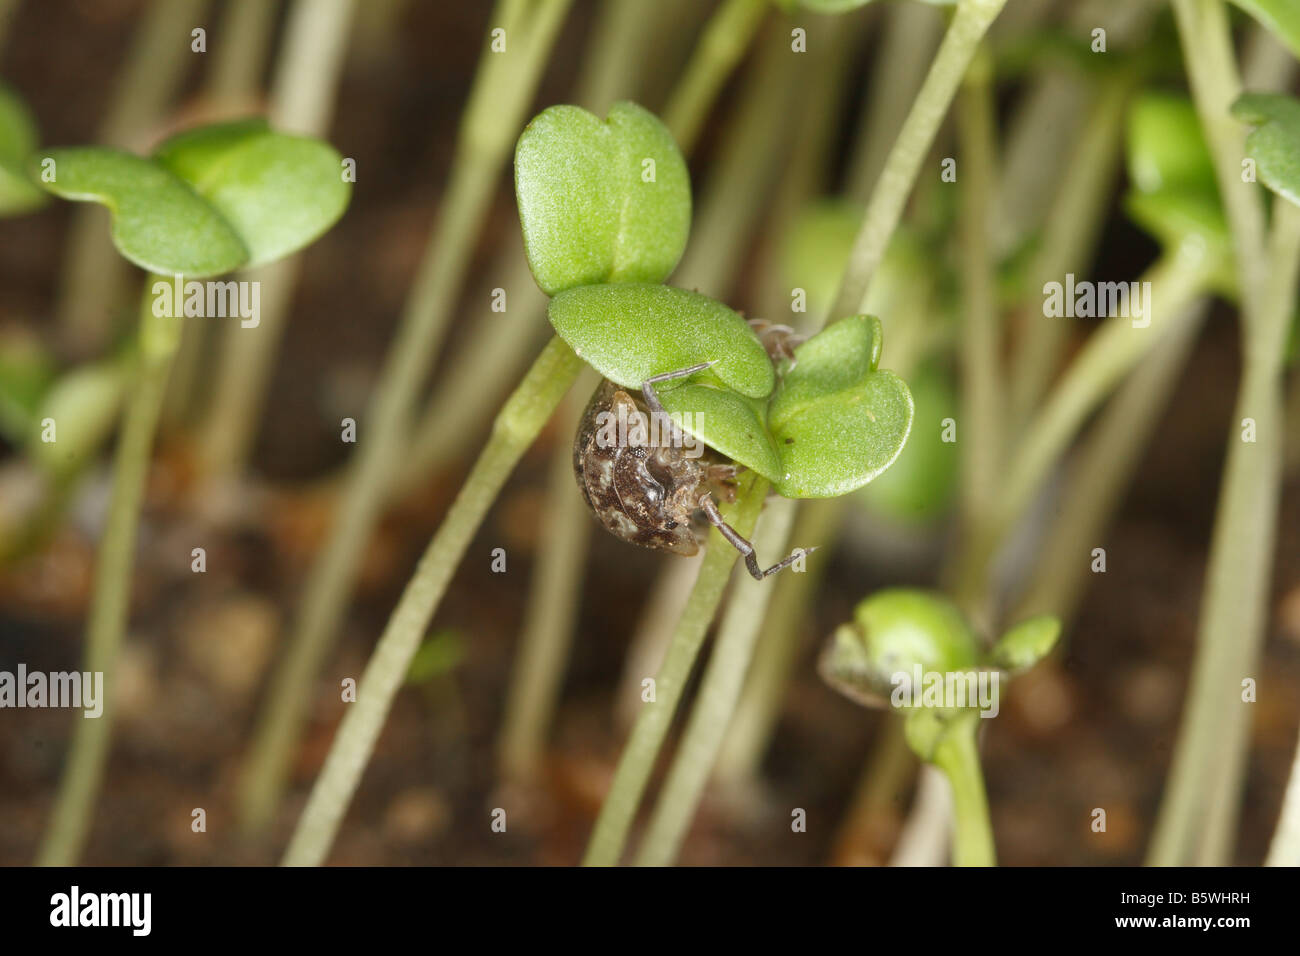 WOOD LOUSE Oniscus asellus FEEDING ON GERMINATING SEEDLING AT NIGHT - Stock Image